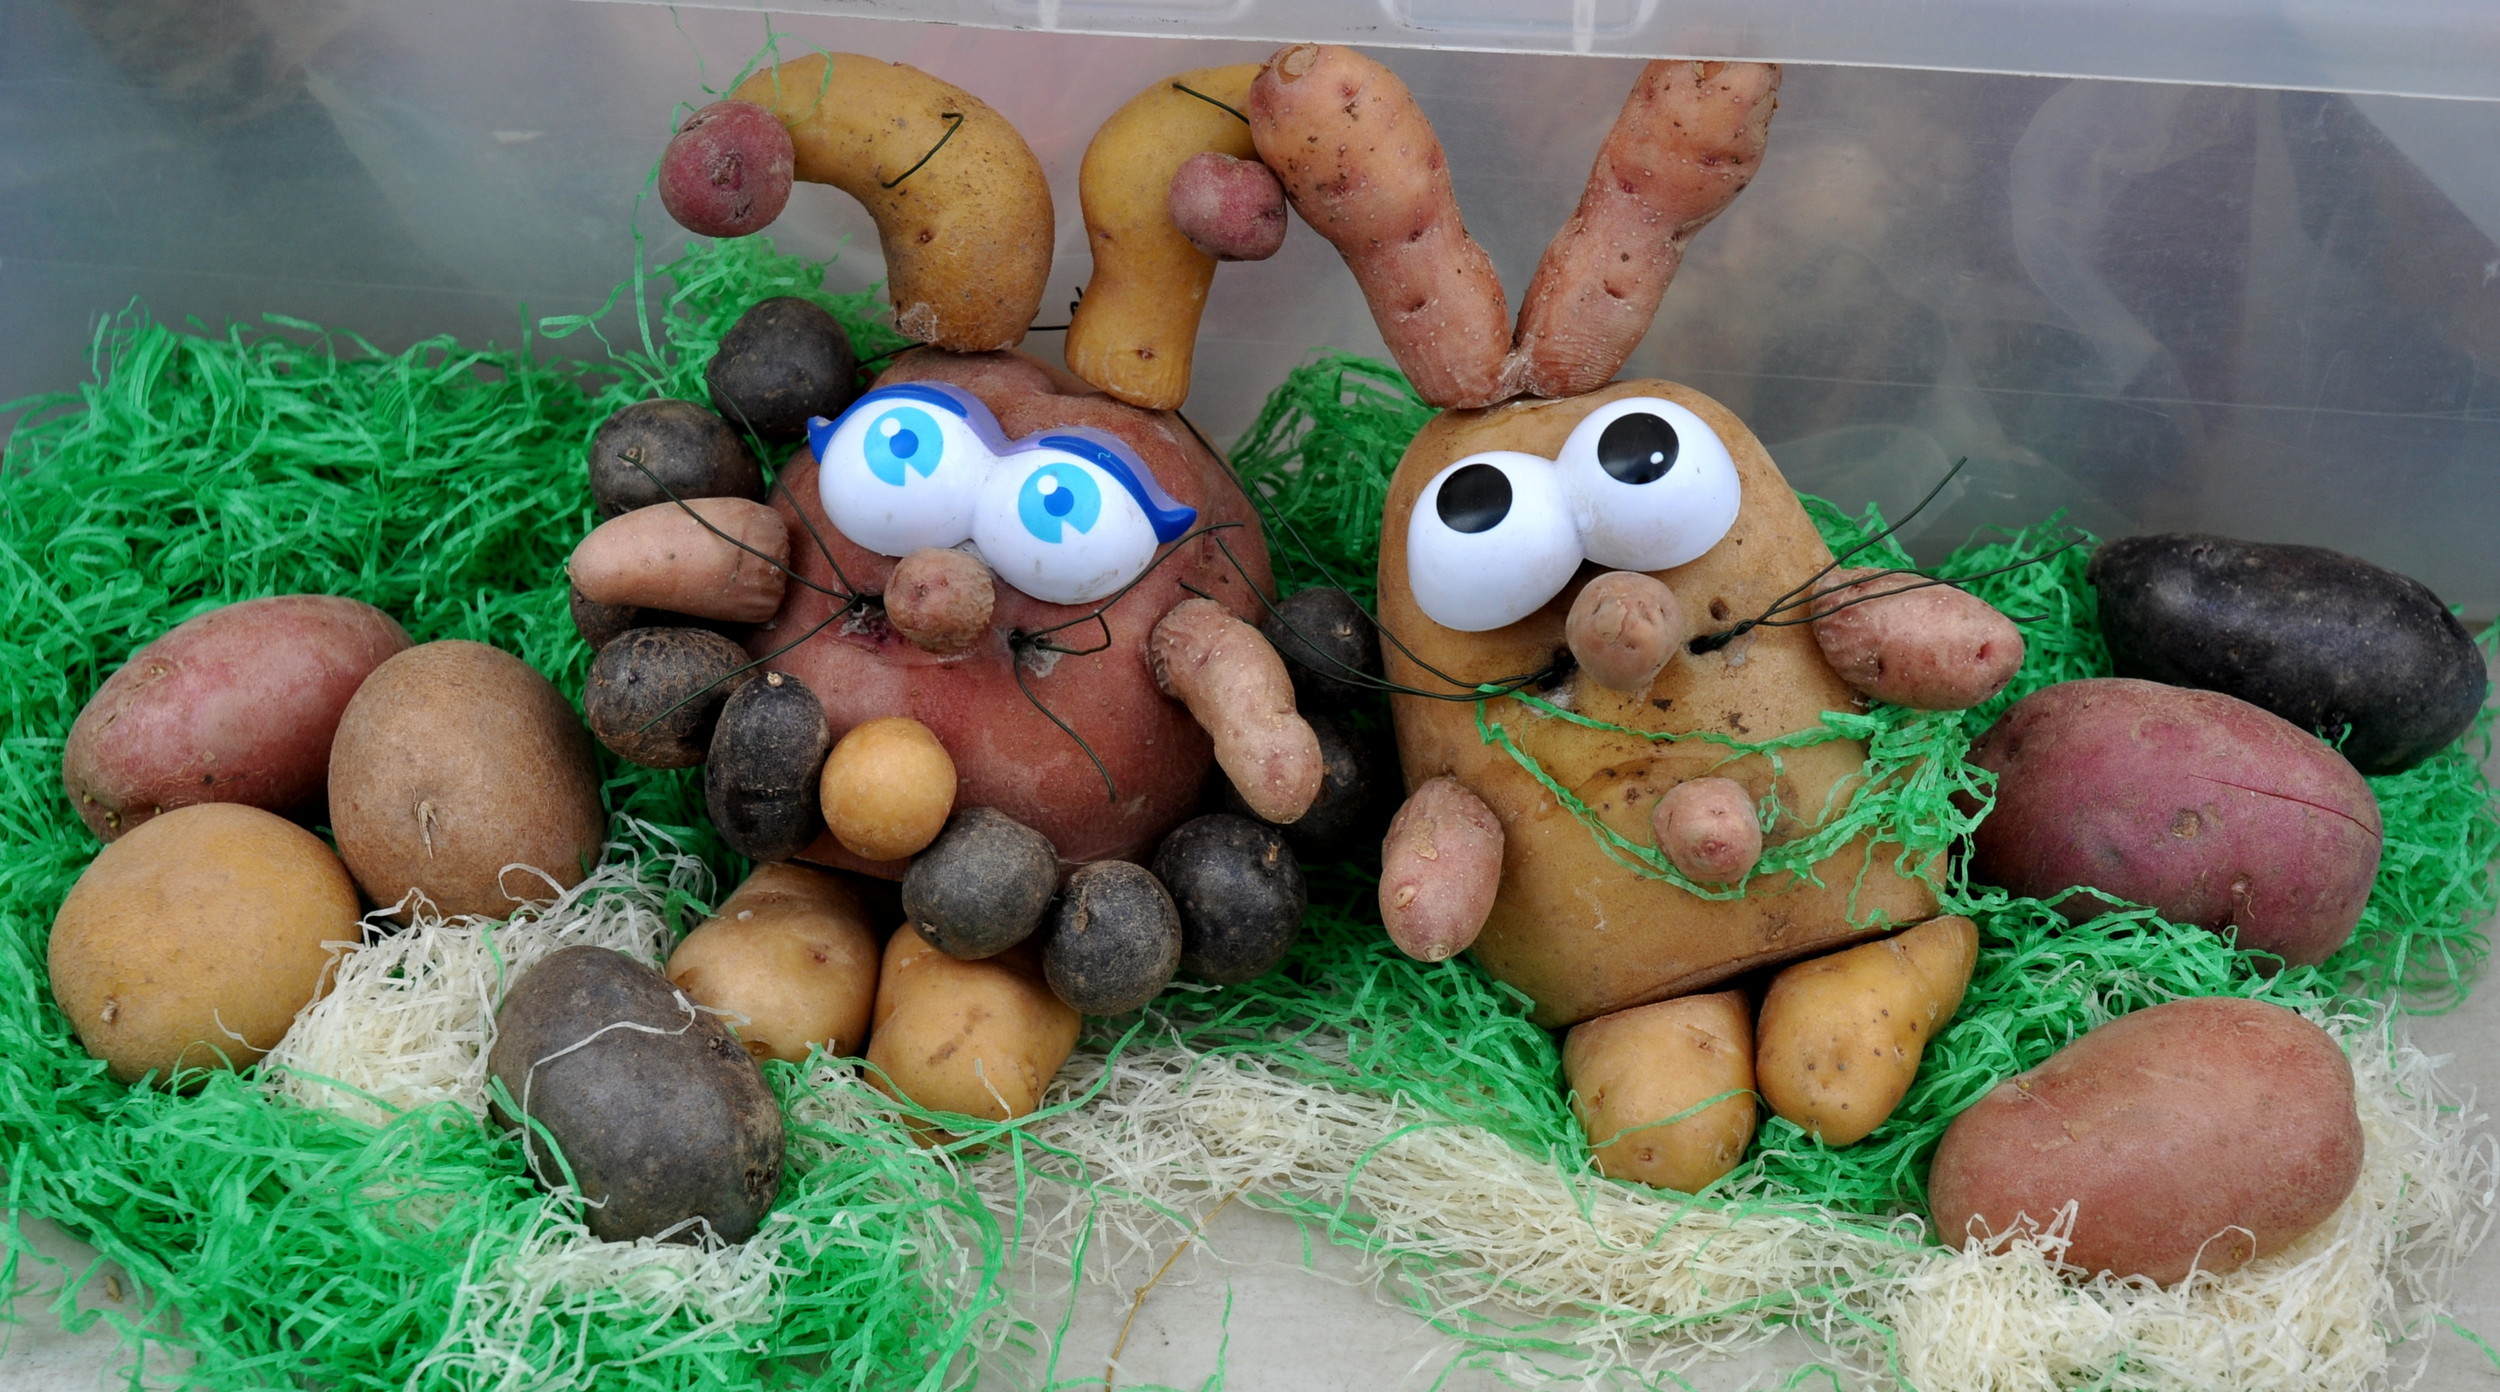 Easter fun from Olsen Farms. Photo copyright 2012 by Zachary D. Lyons.